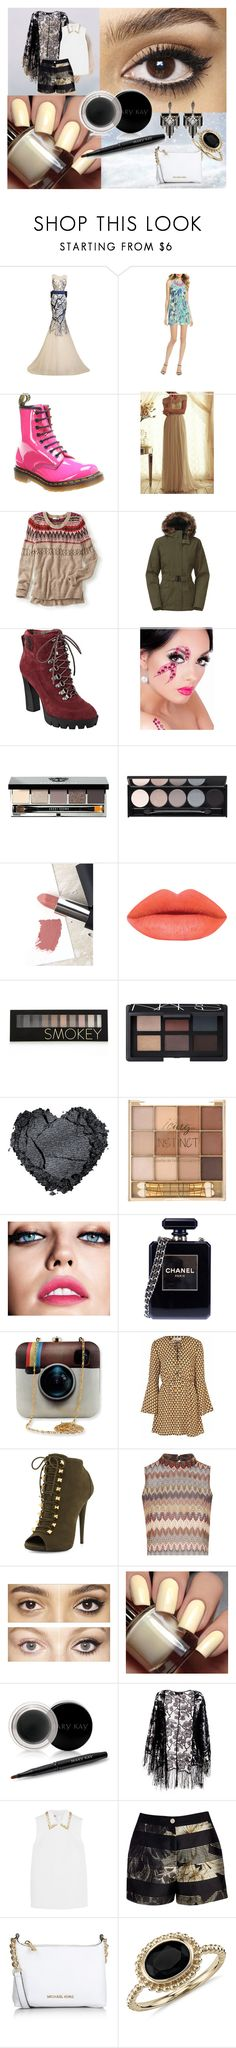 """""""0278"""" by doglover43 ❤ liked on Polyvore featuring Sephora Collection, Shoshanna, Dr. Martens, maurices, The North Face, Nine West, Bobbi Brown Cosmetics, Witchery, Sigma and Forever 21"""